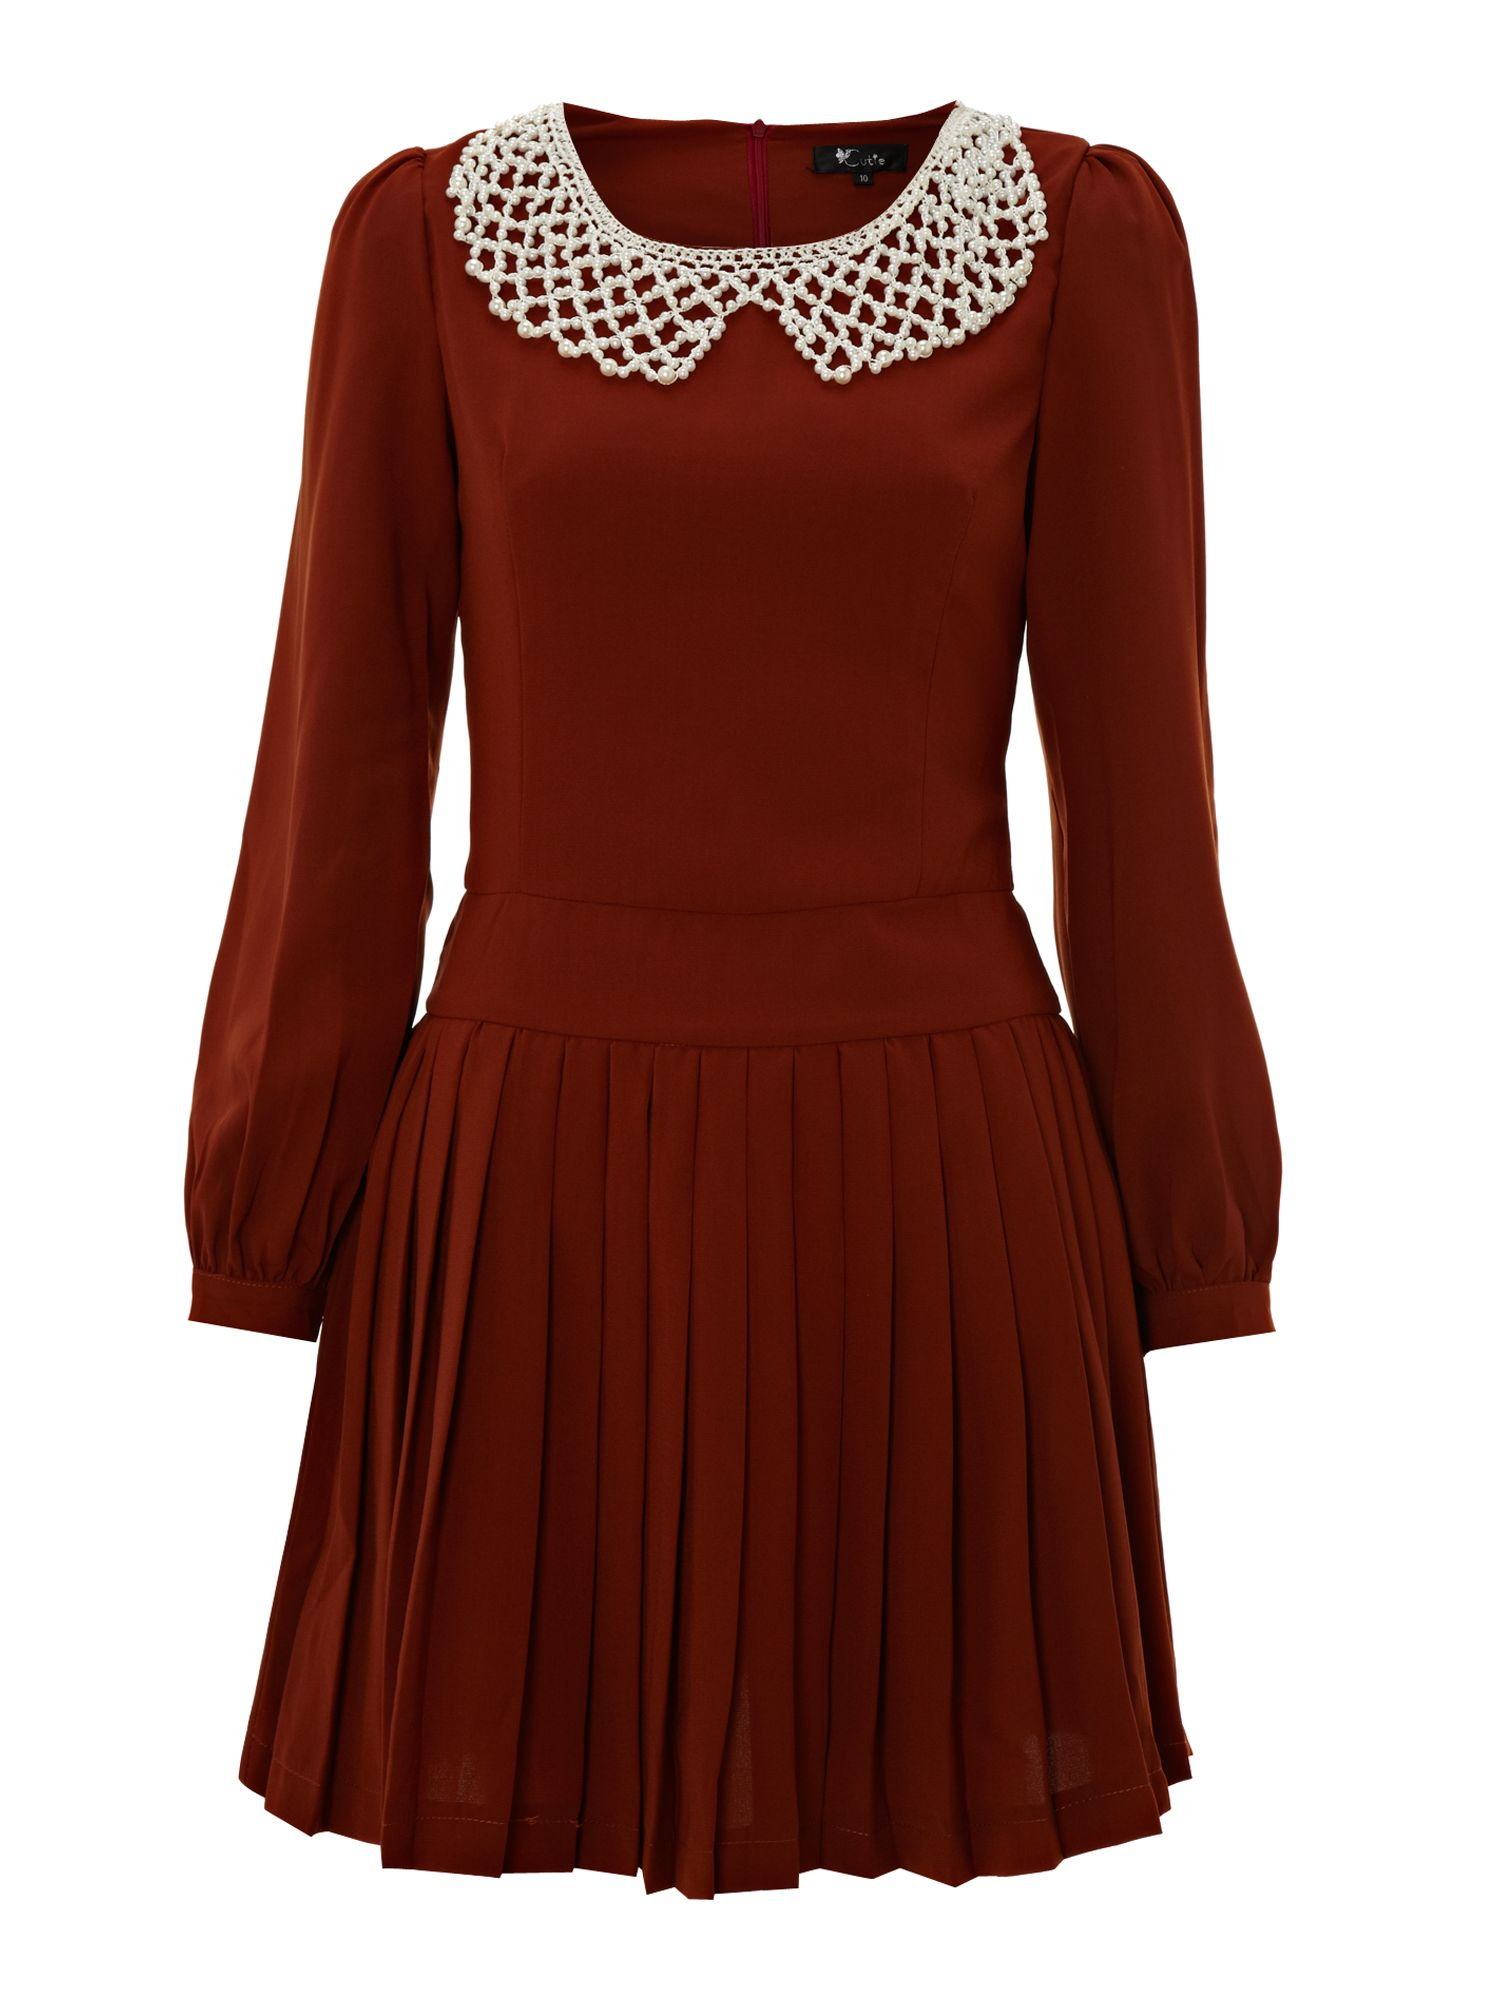 Pearl collar dress